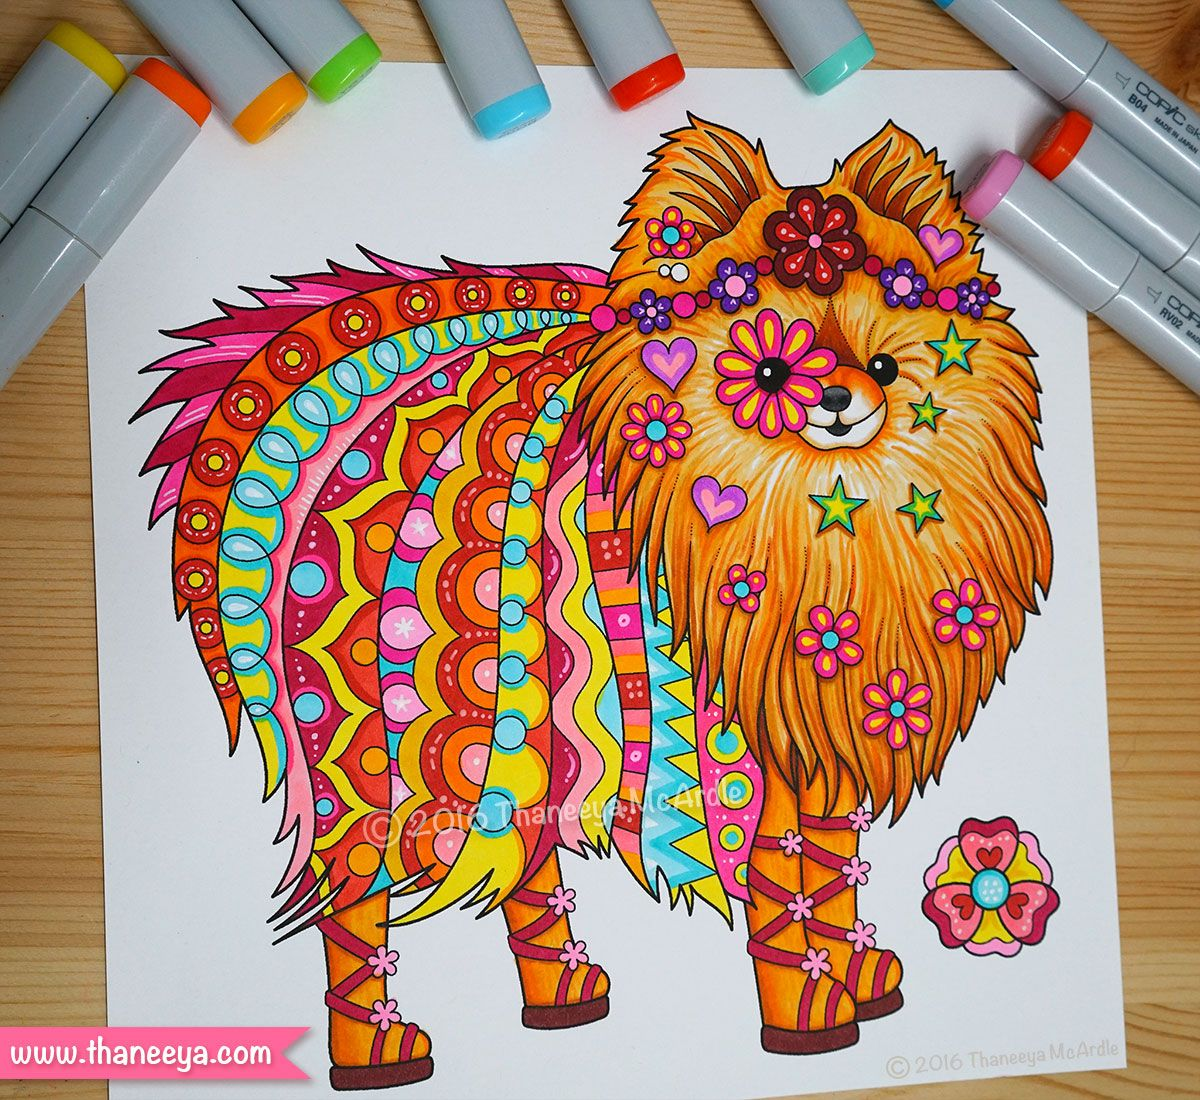 Pomeranian Coloring Page From Thaneeya McArdles Hippie Animals Book